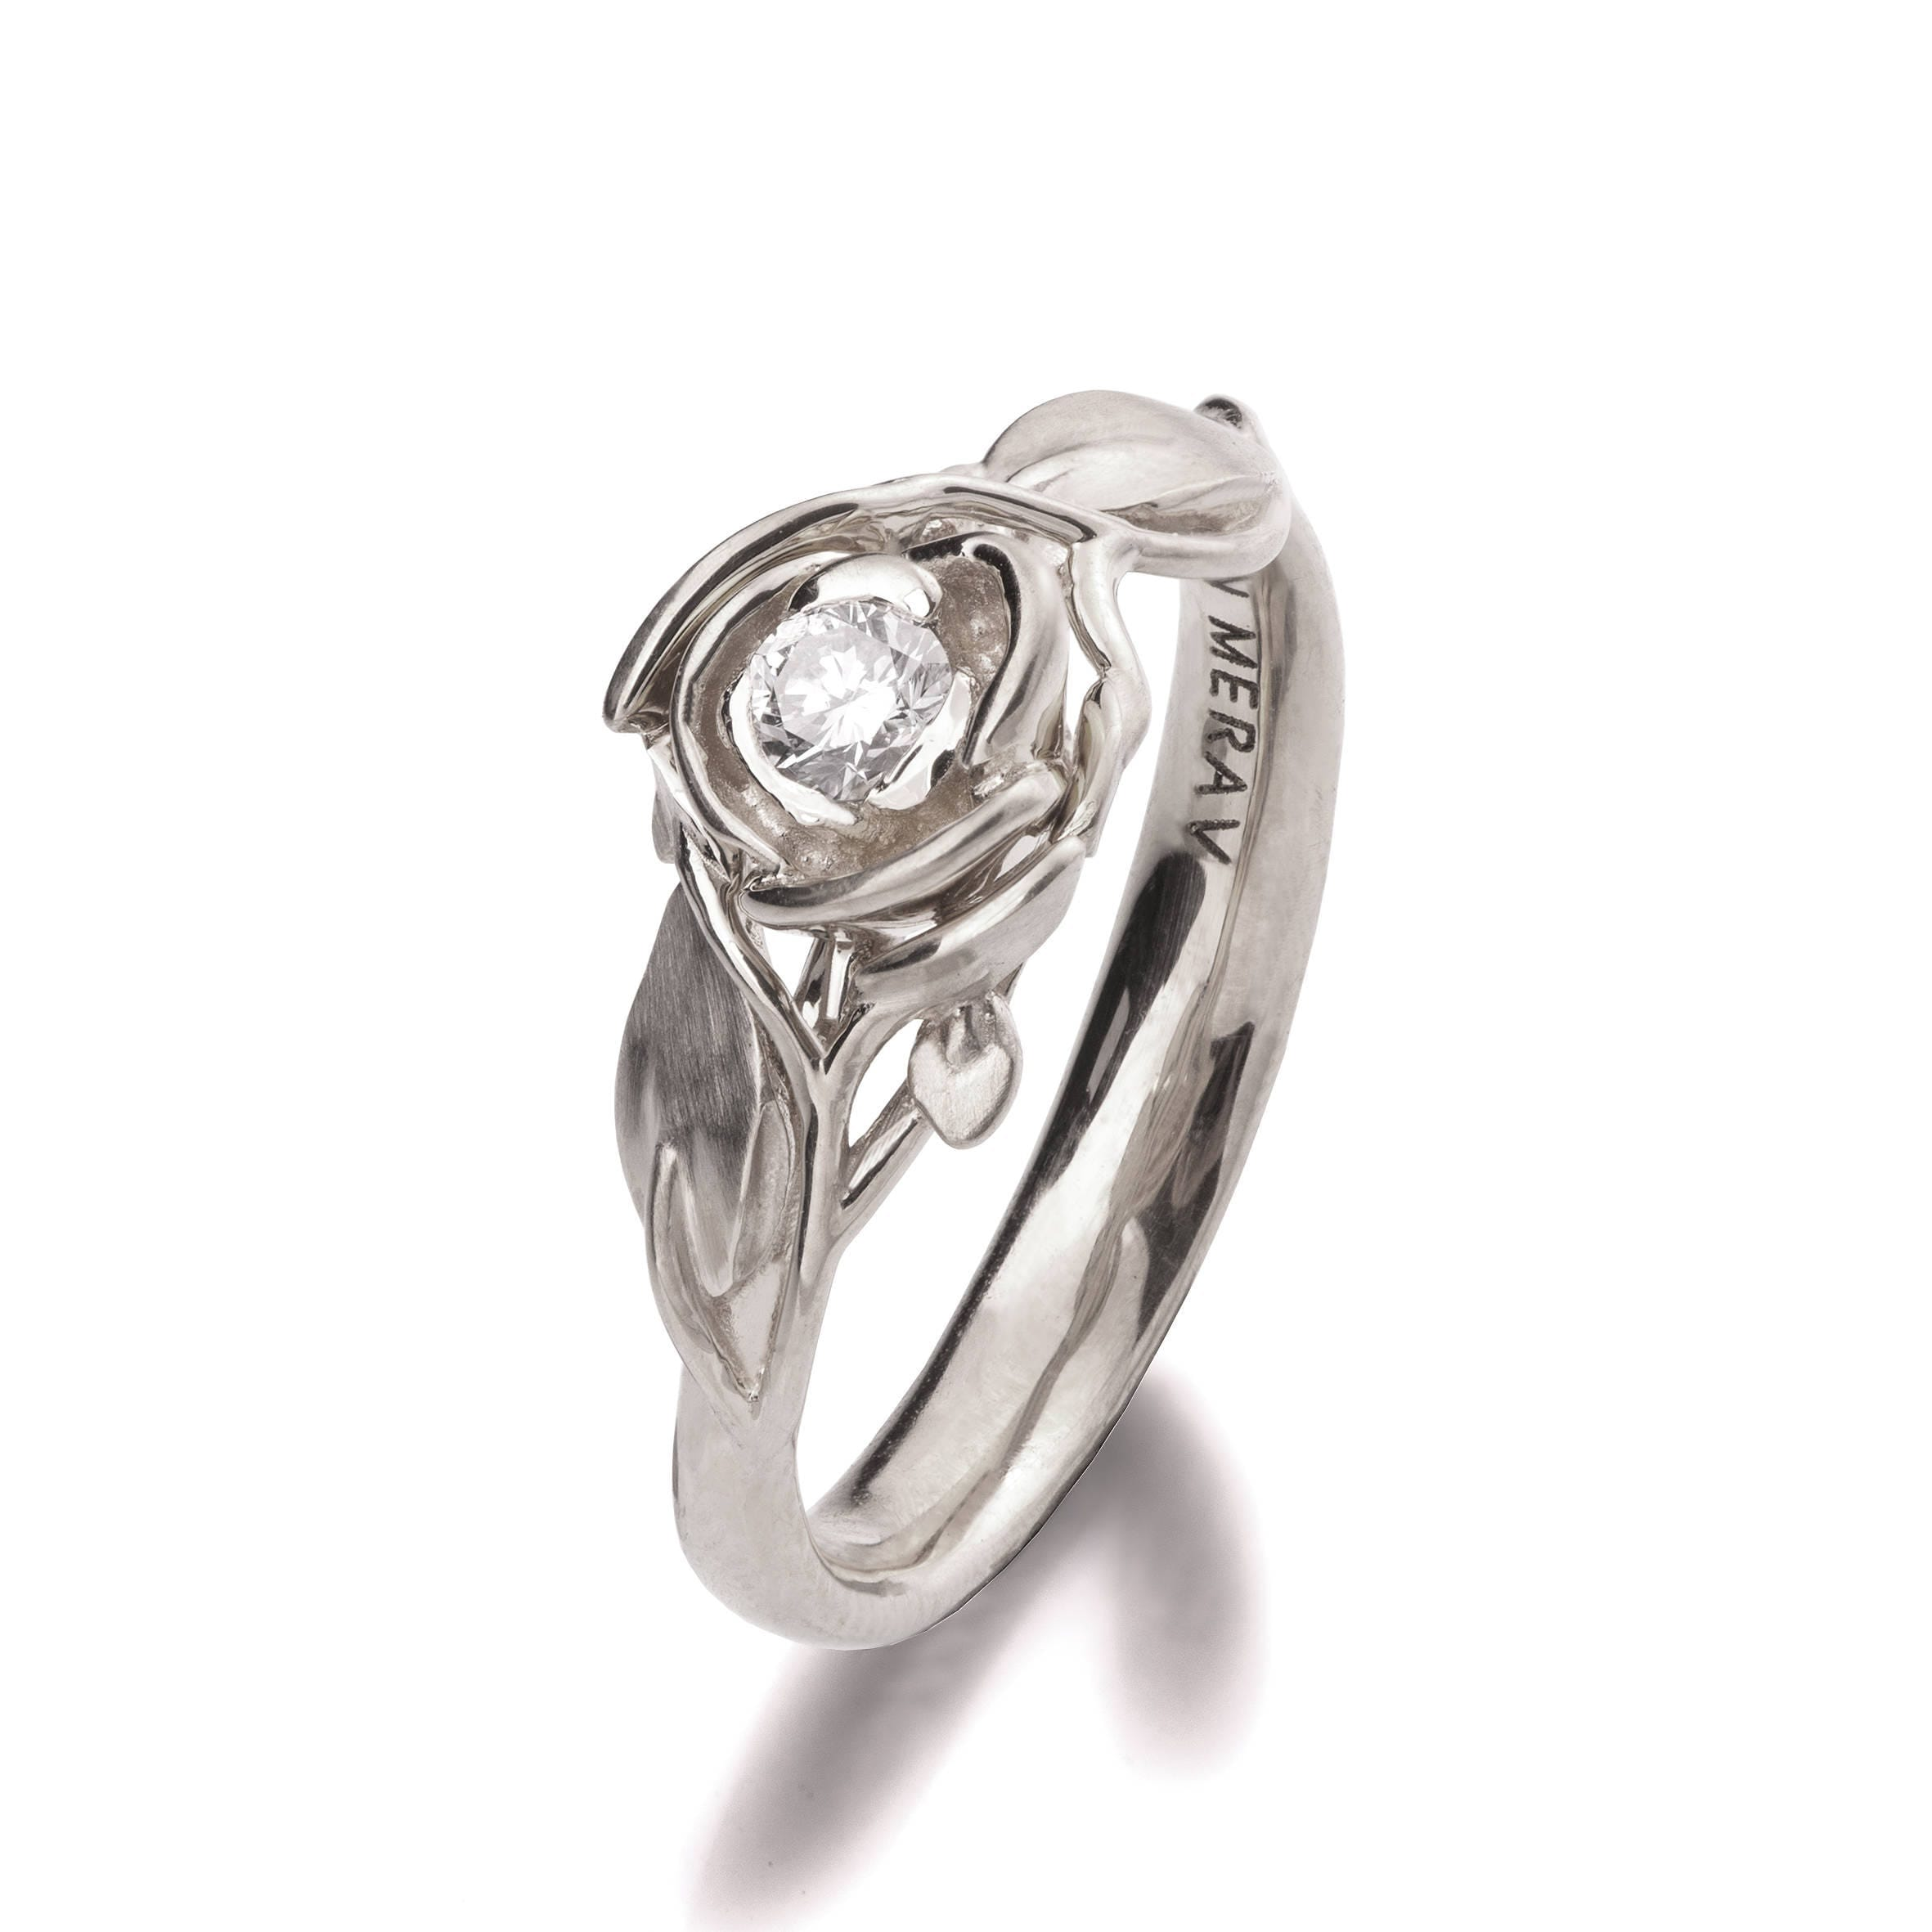 Rose Engagement Ring No 3 18K White Gold and Diamond